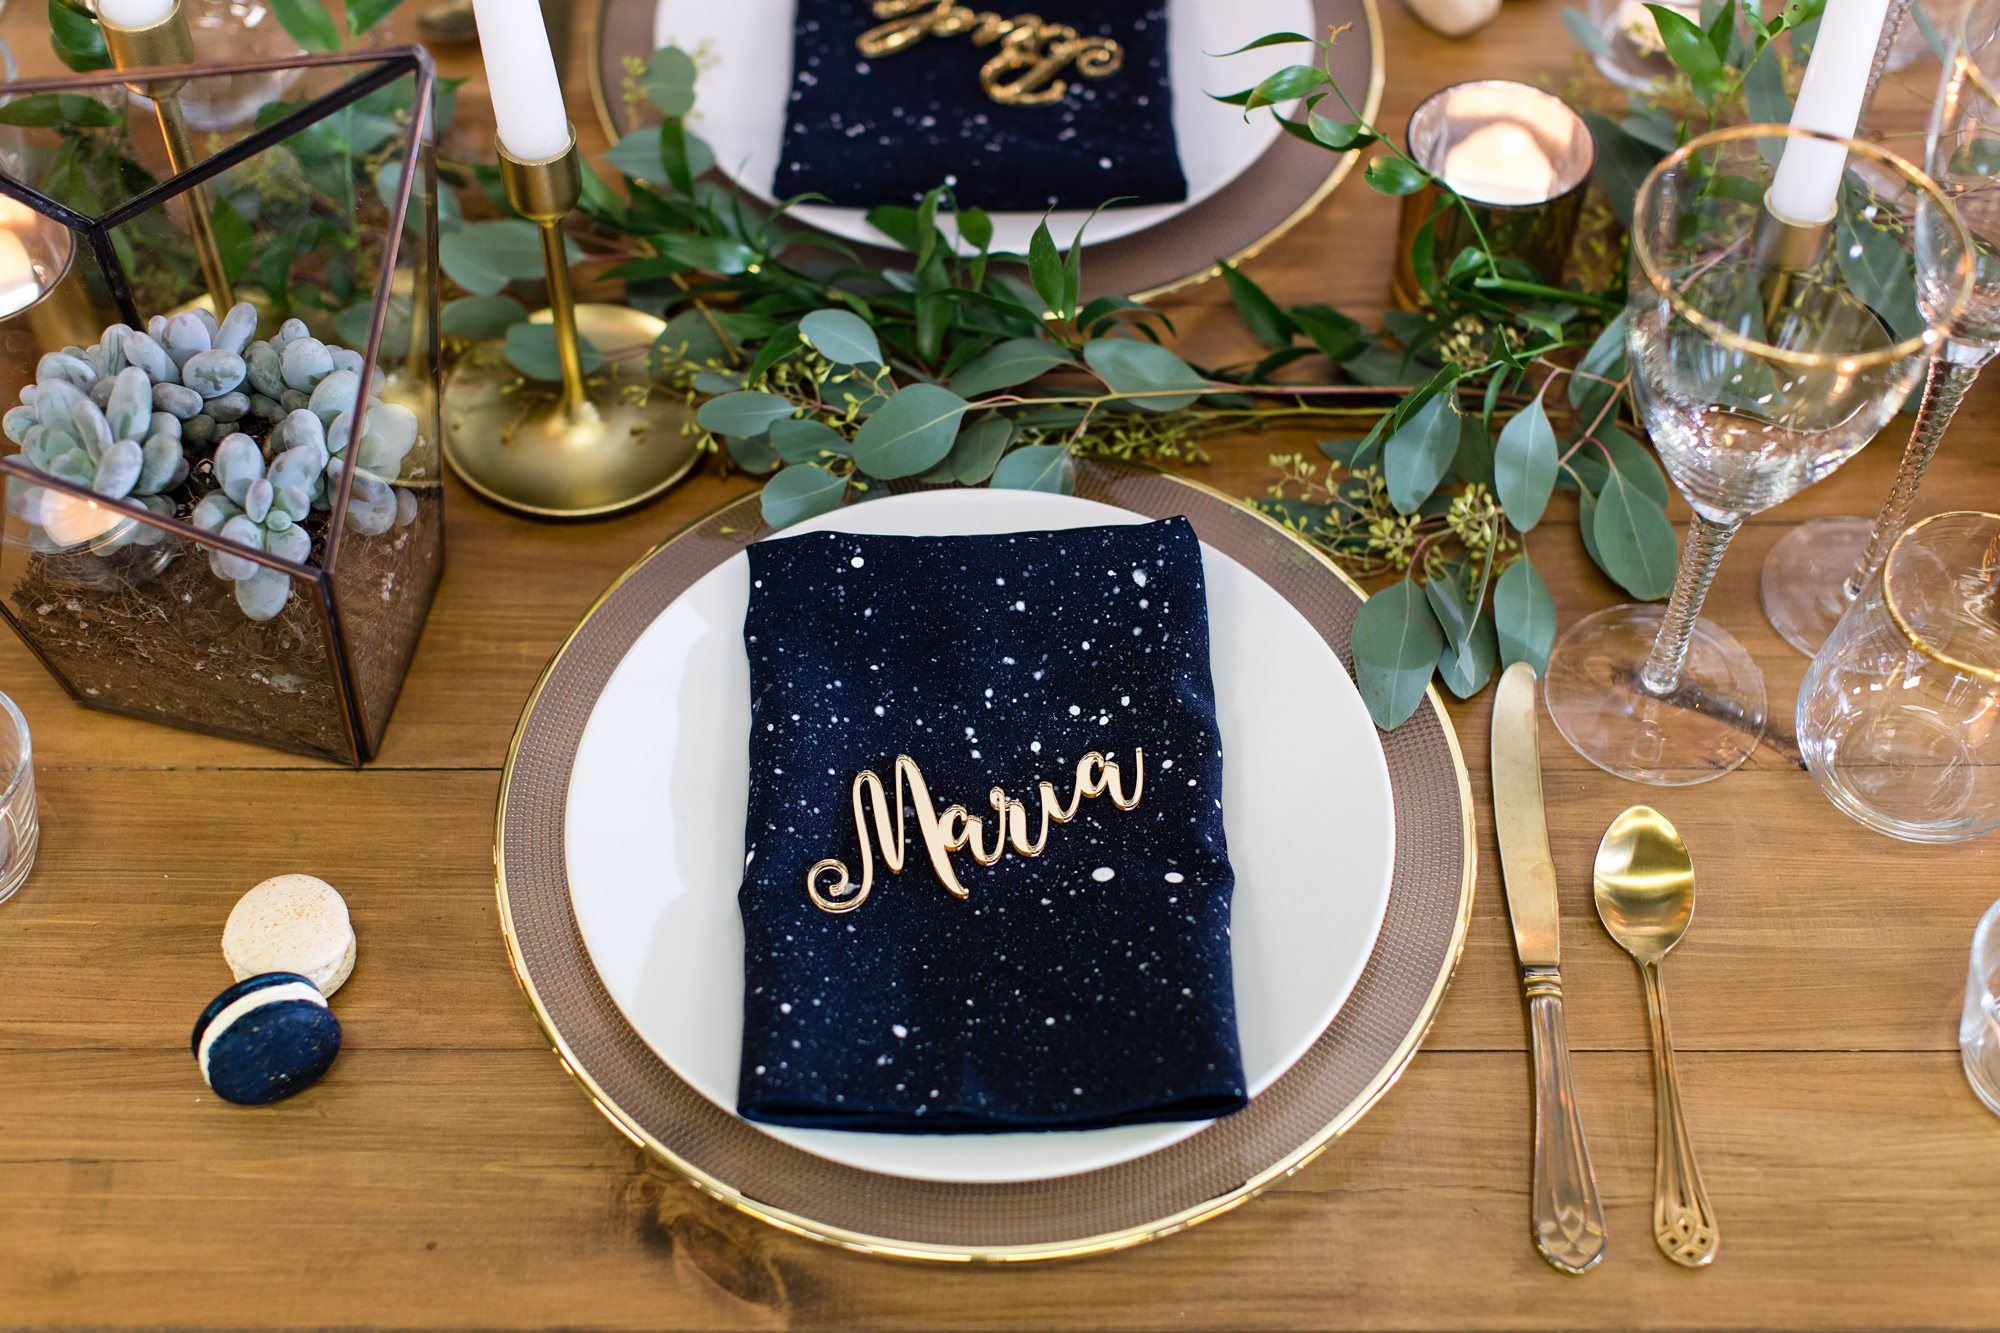 Quirky Yorkshire Wedding Venue River Mills Ballroom stargazing themed tablewear